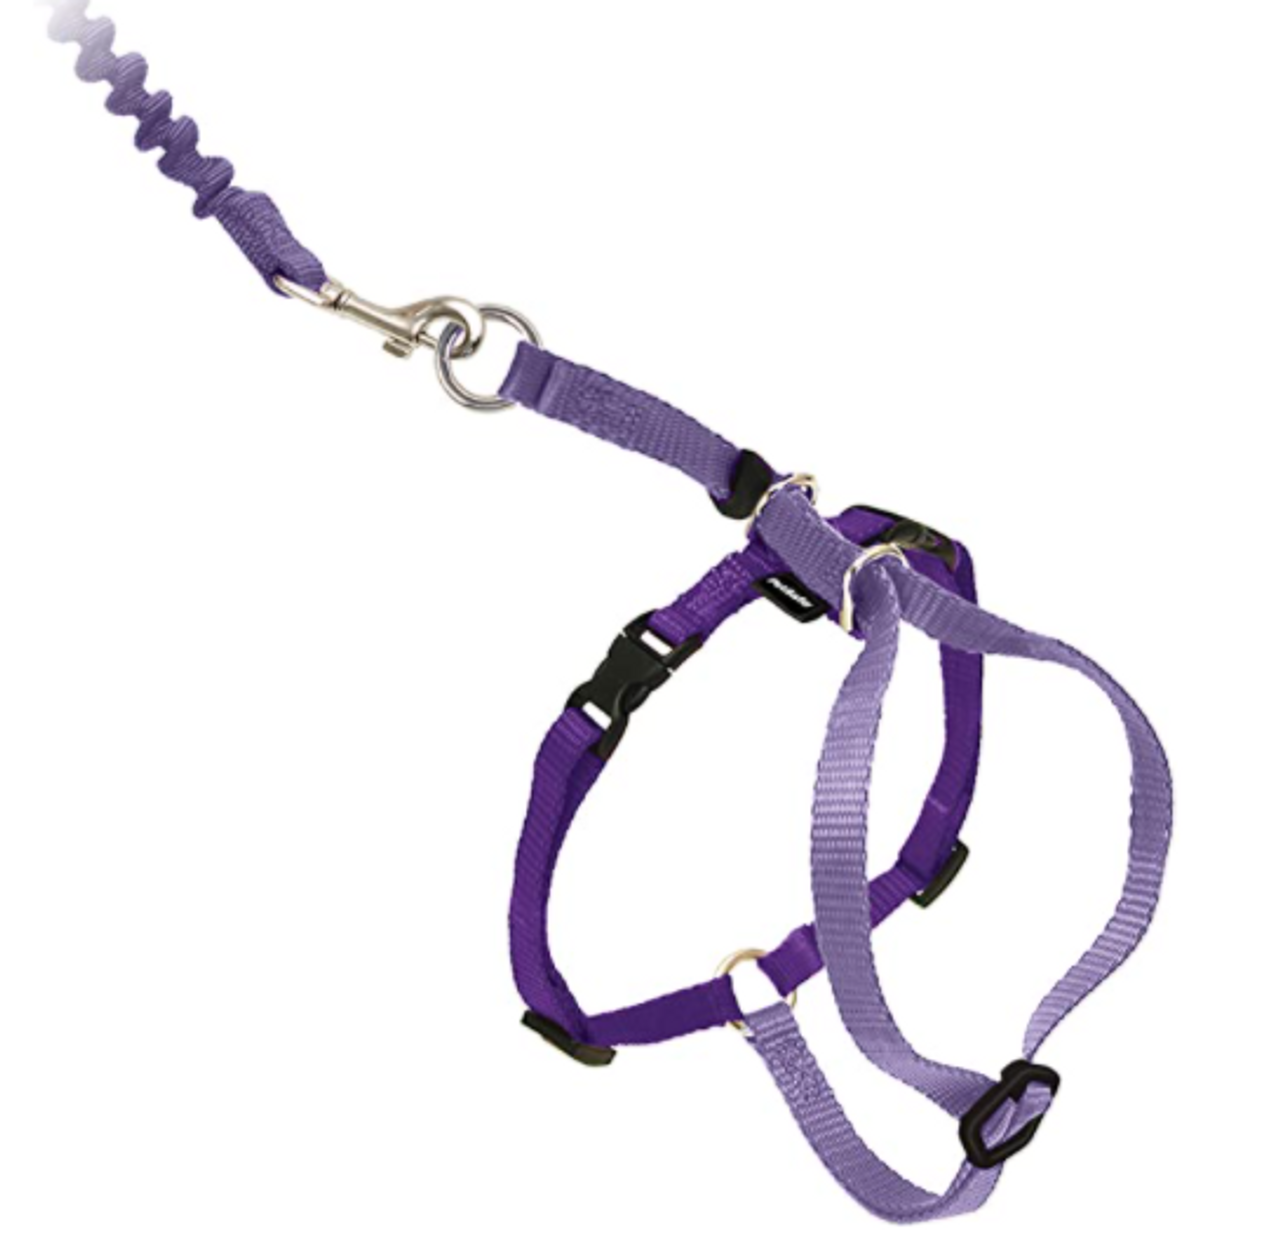 Petsafe Come With Me Kitty Harness Leash Lilac/Bright Purple MD